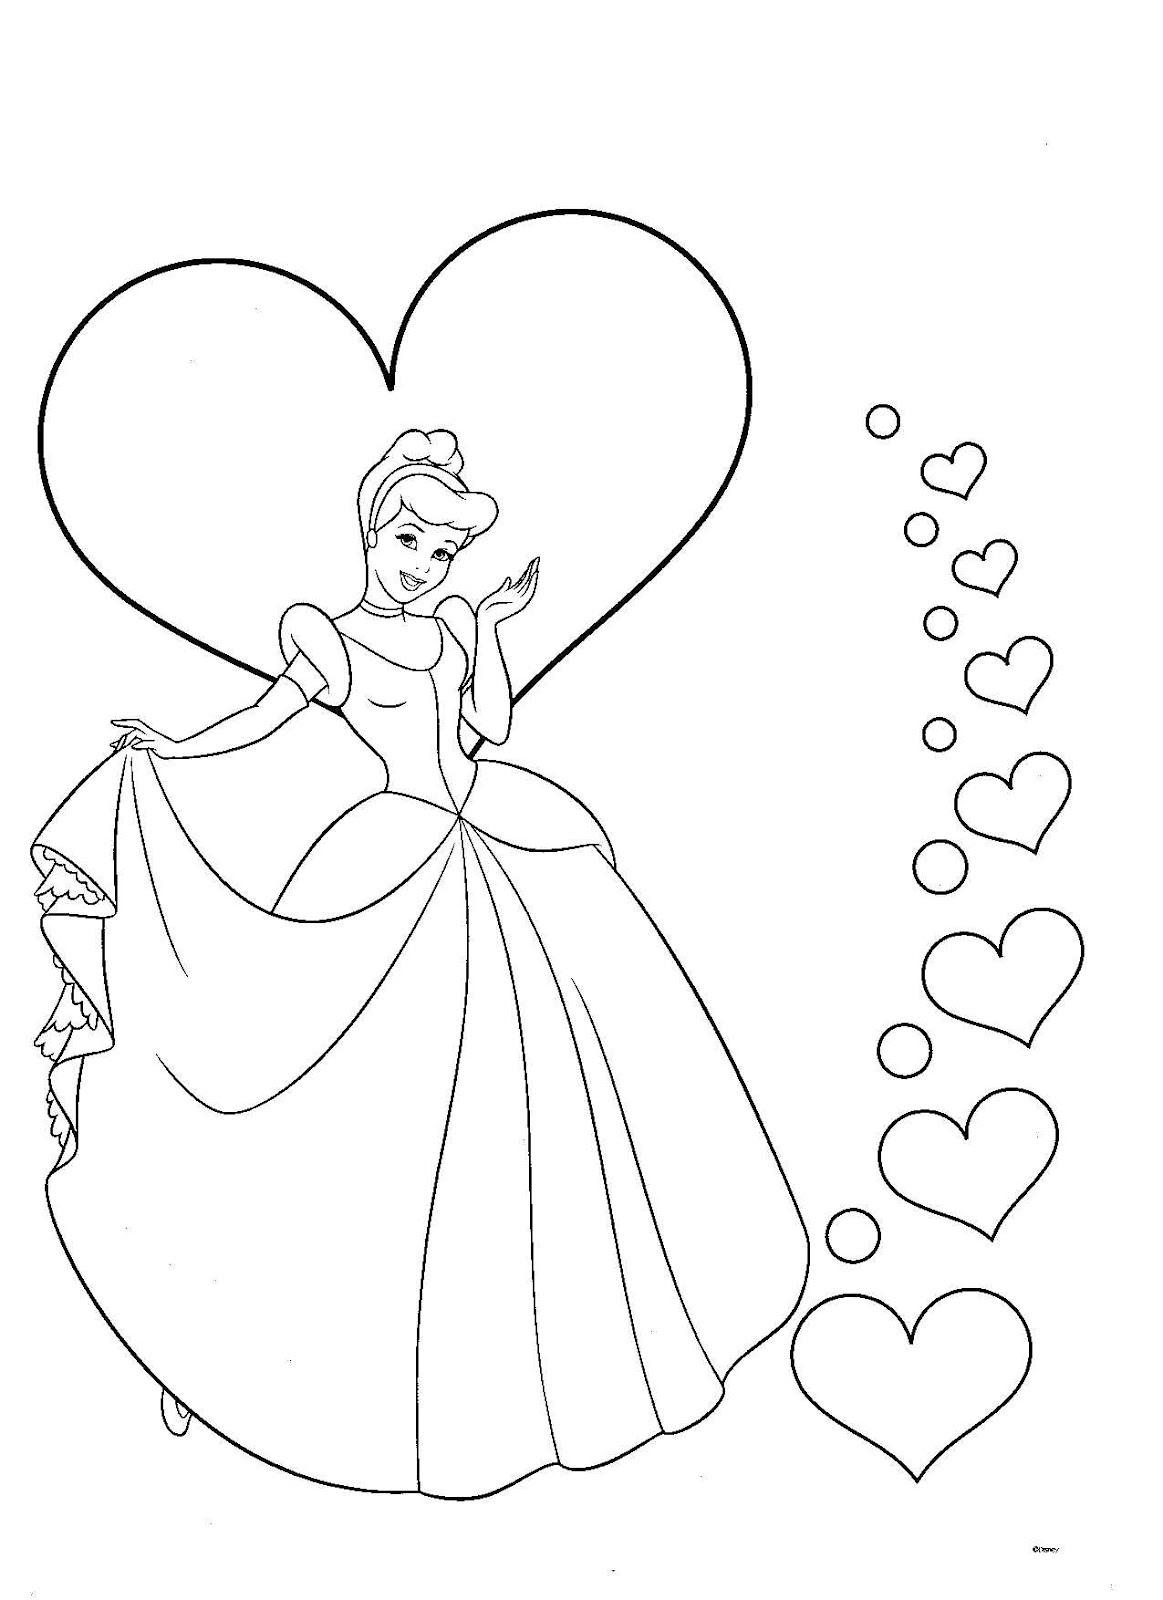 Dibujos para colorear pintar imprimir princesas for Immagini da colorare belle